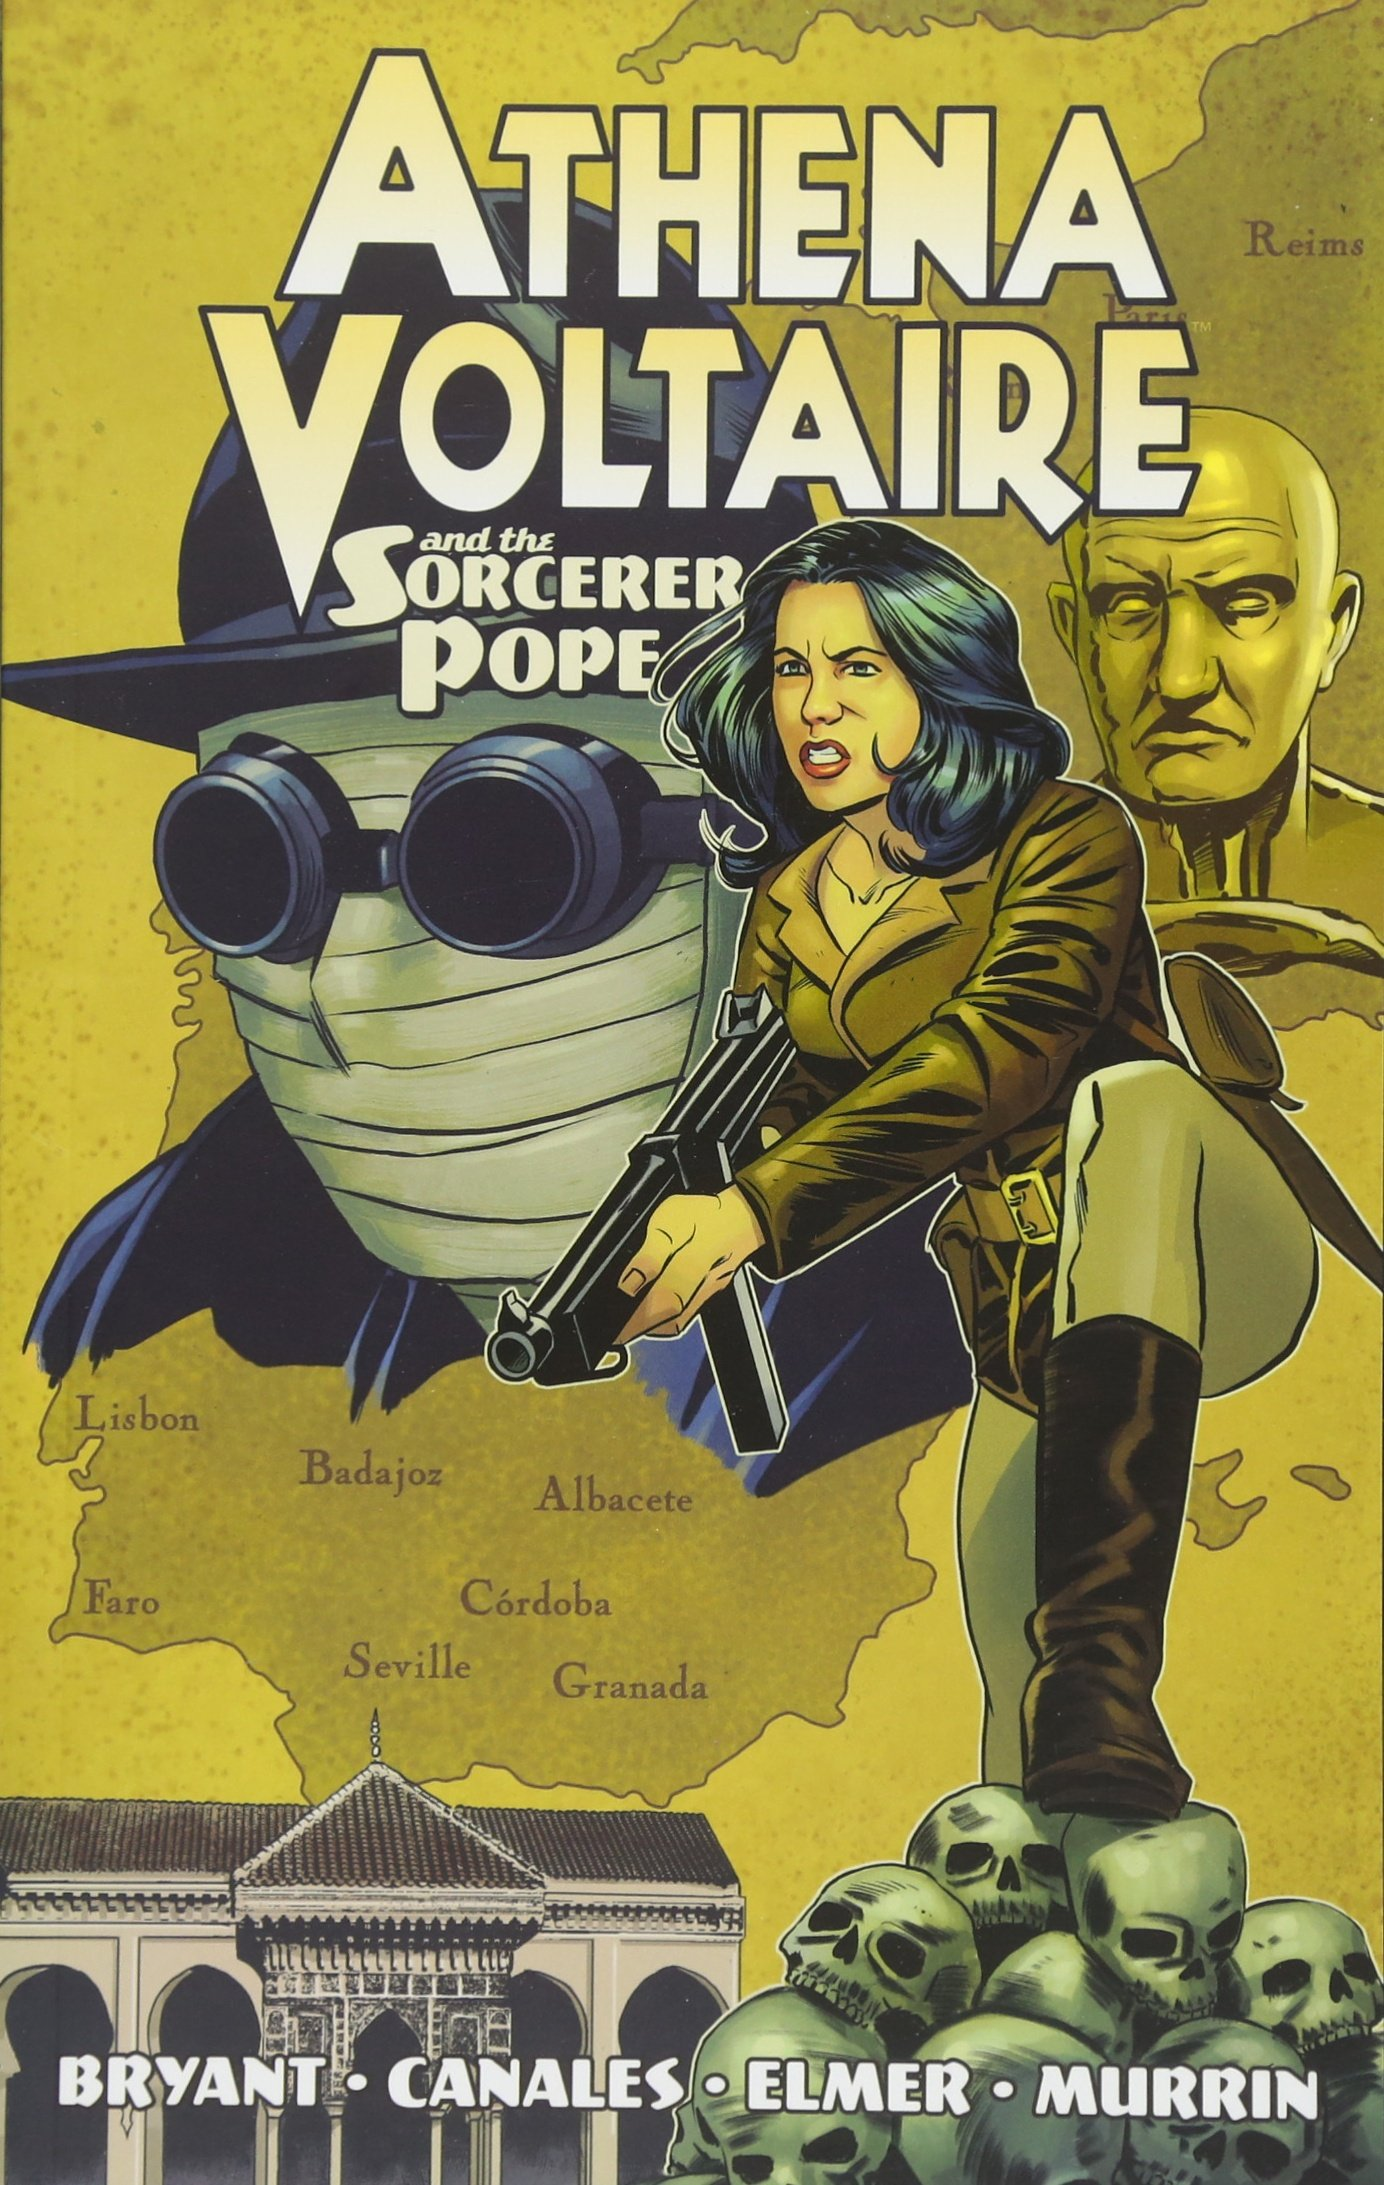 Athena Voltaire and the Sorcerer Pope: Steve Bryant, Ismael Canales, Emily  Elmer: 9781632293732: Amazon.com: Books